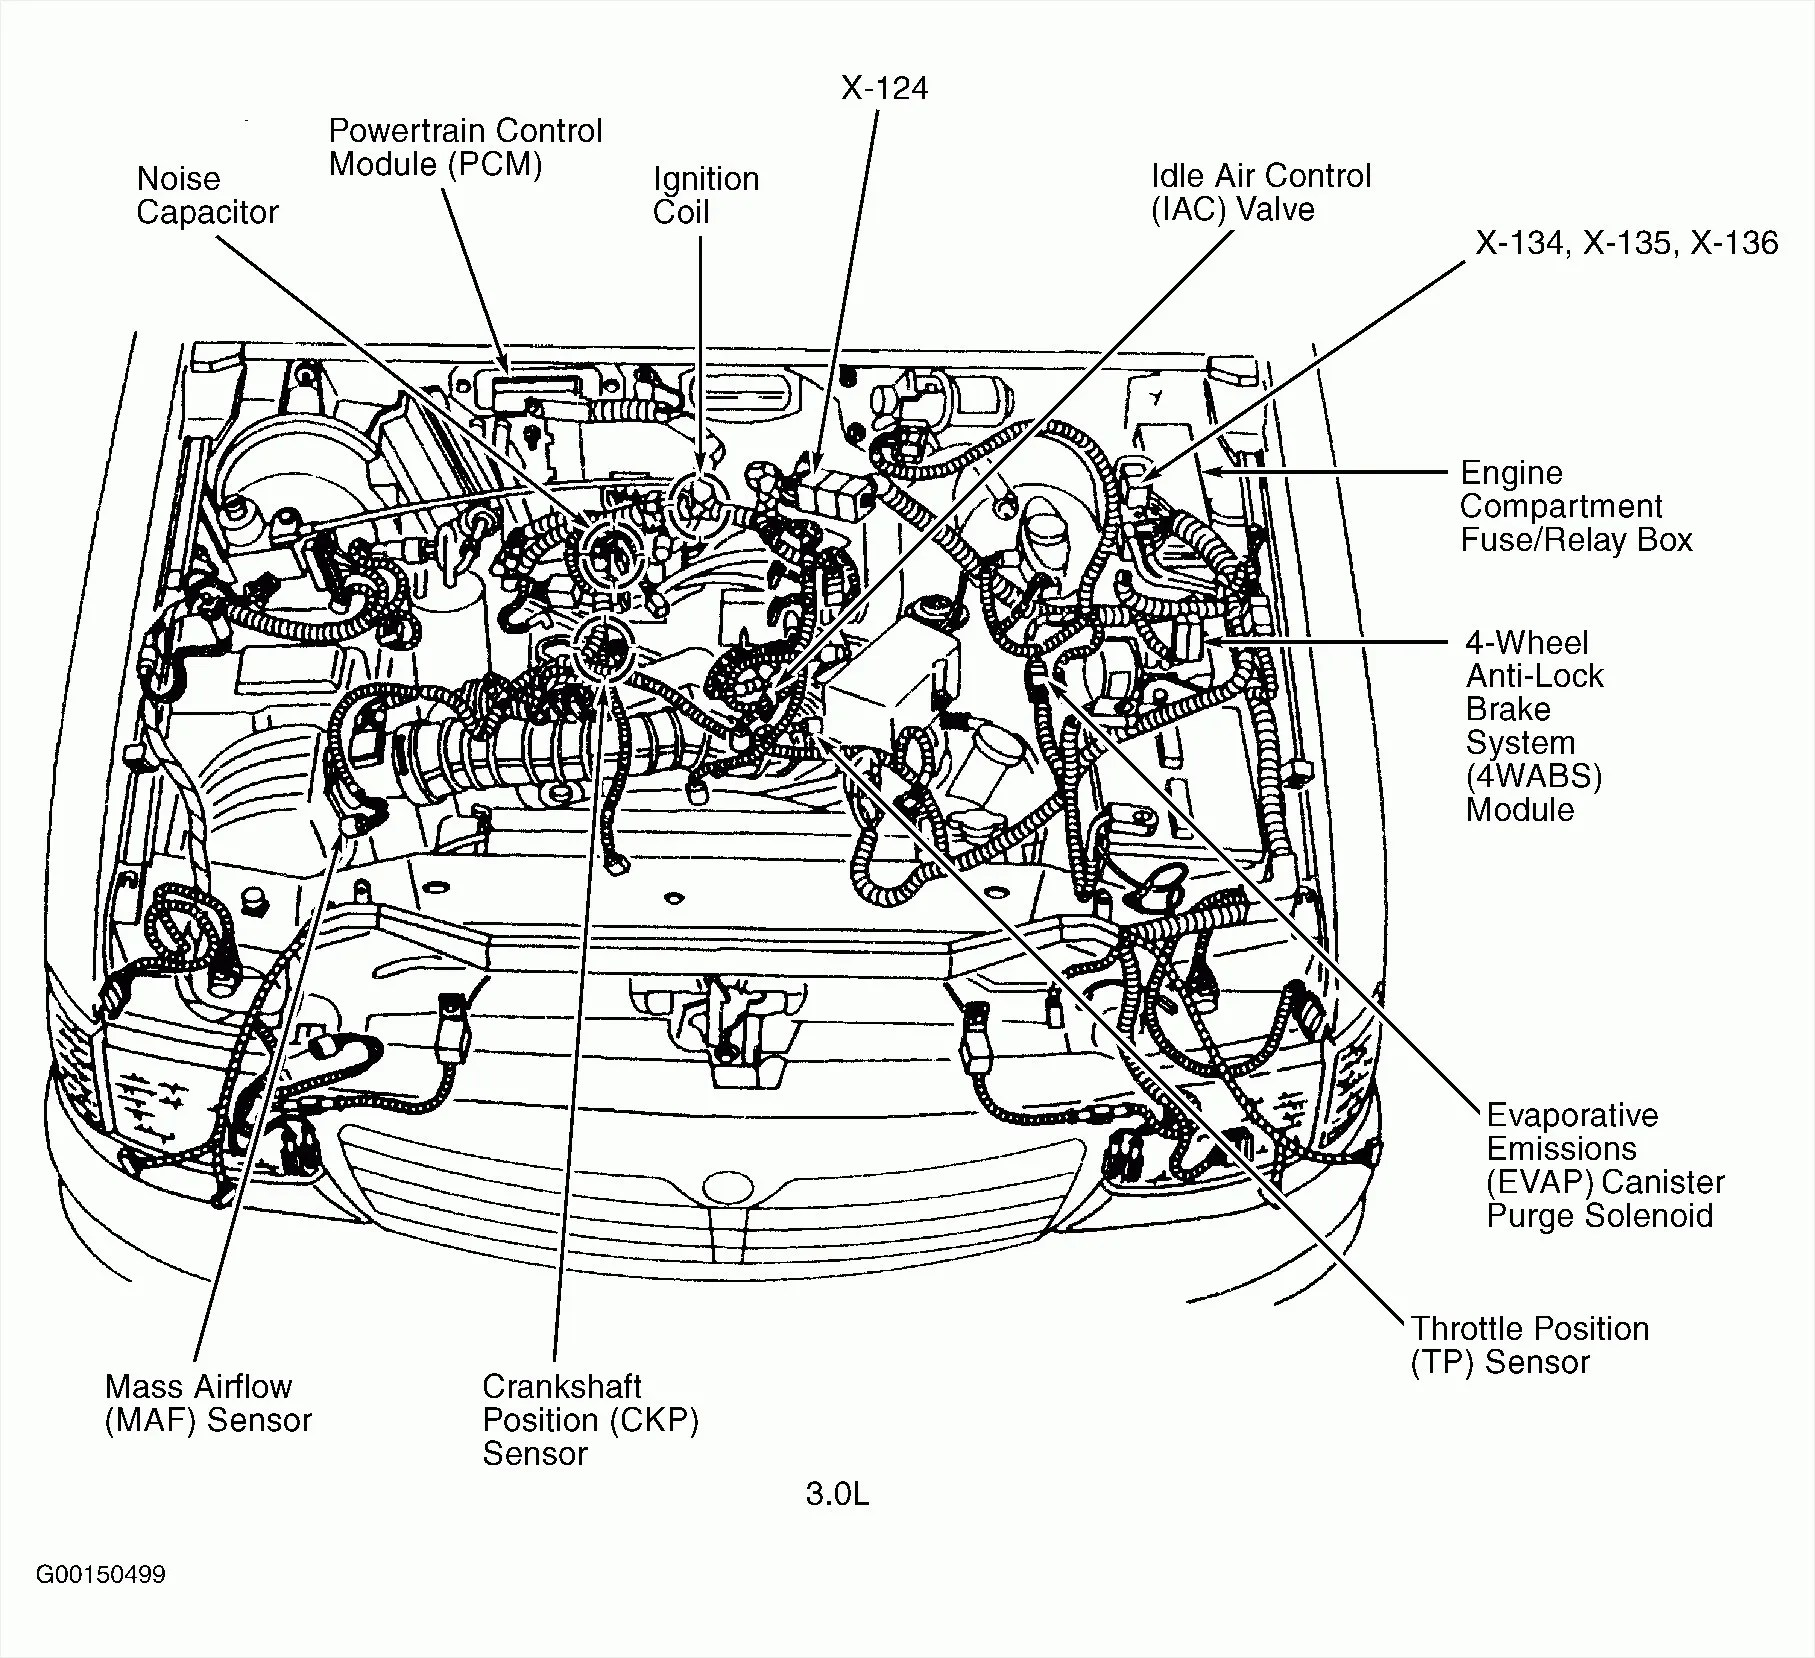 hight resolution of 2008 jetta engine diagram wiring diagram schematic 2008 volkswagen jetta engine diagram